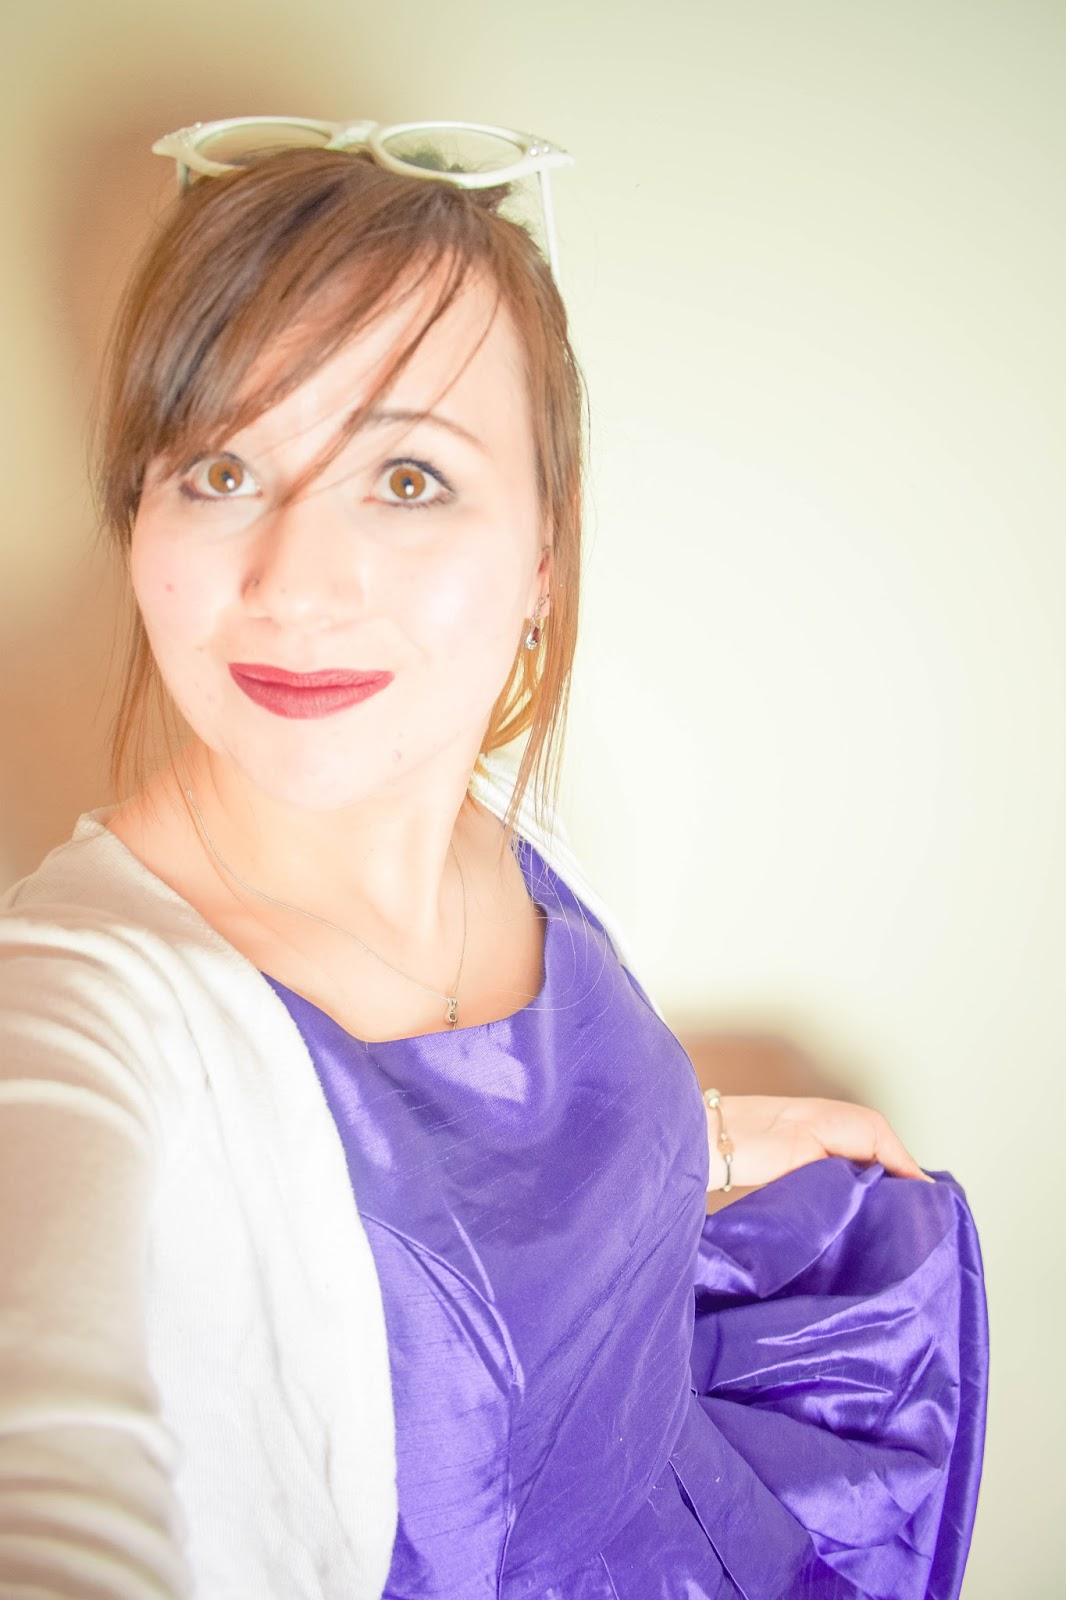 lebellelavie - Embracing my inner Audrey with Lindy Bop clothing